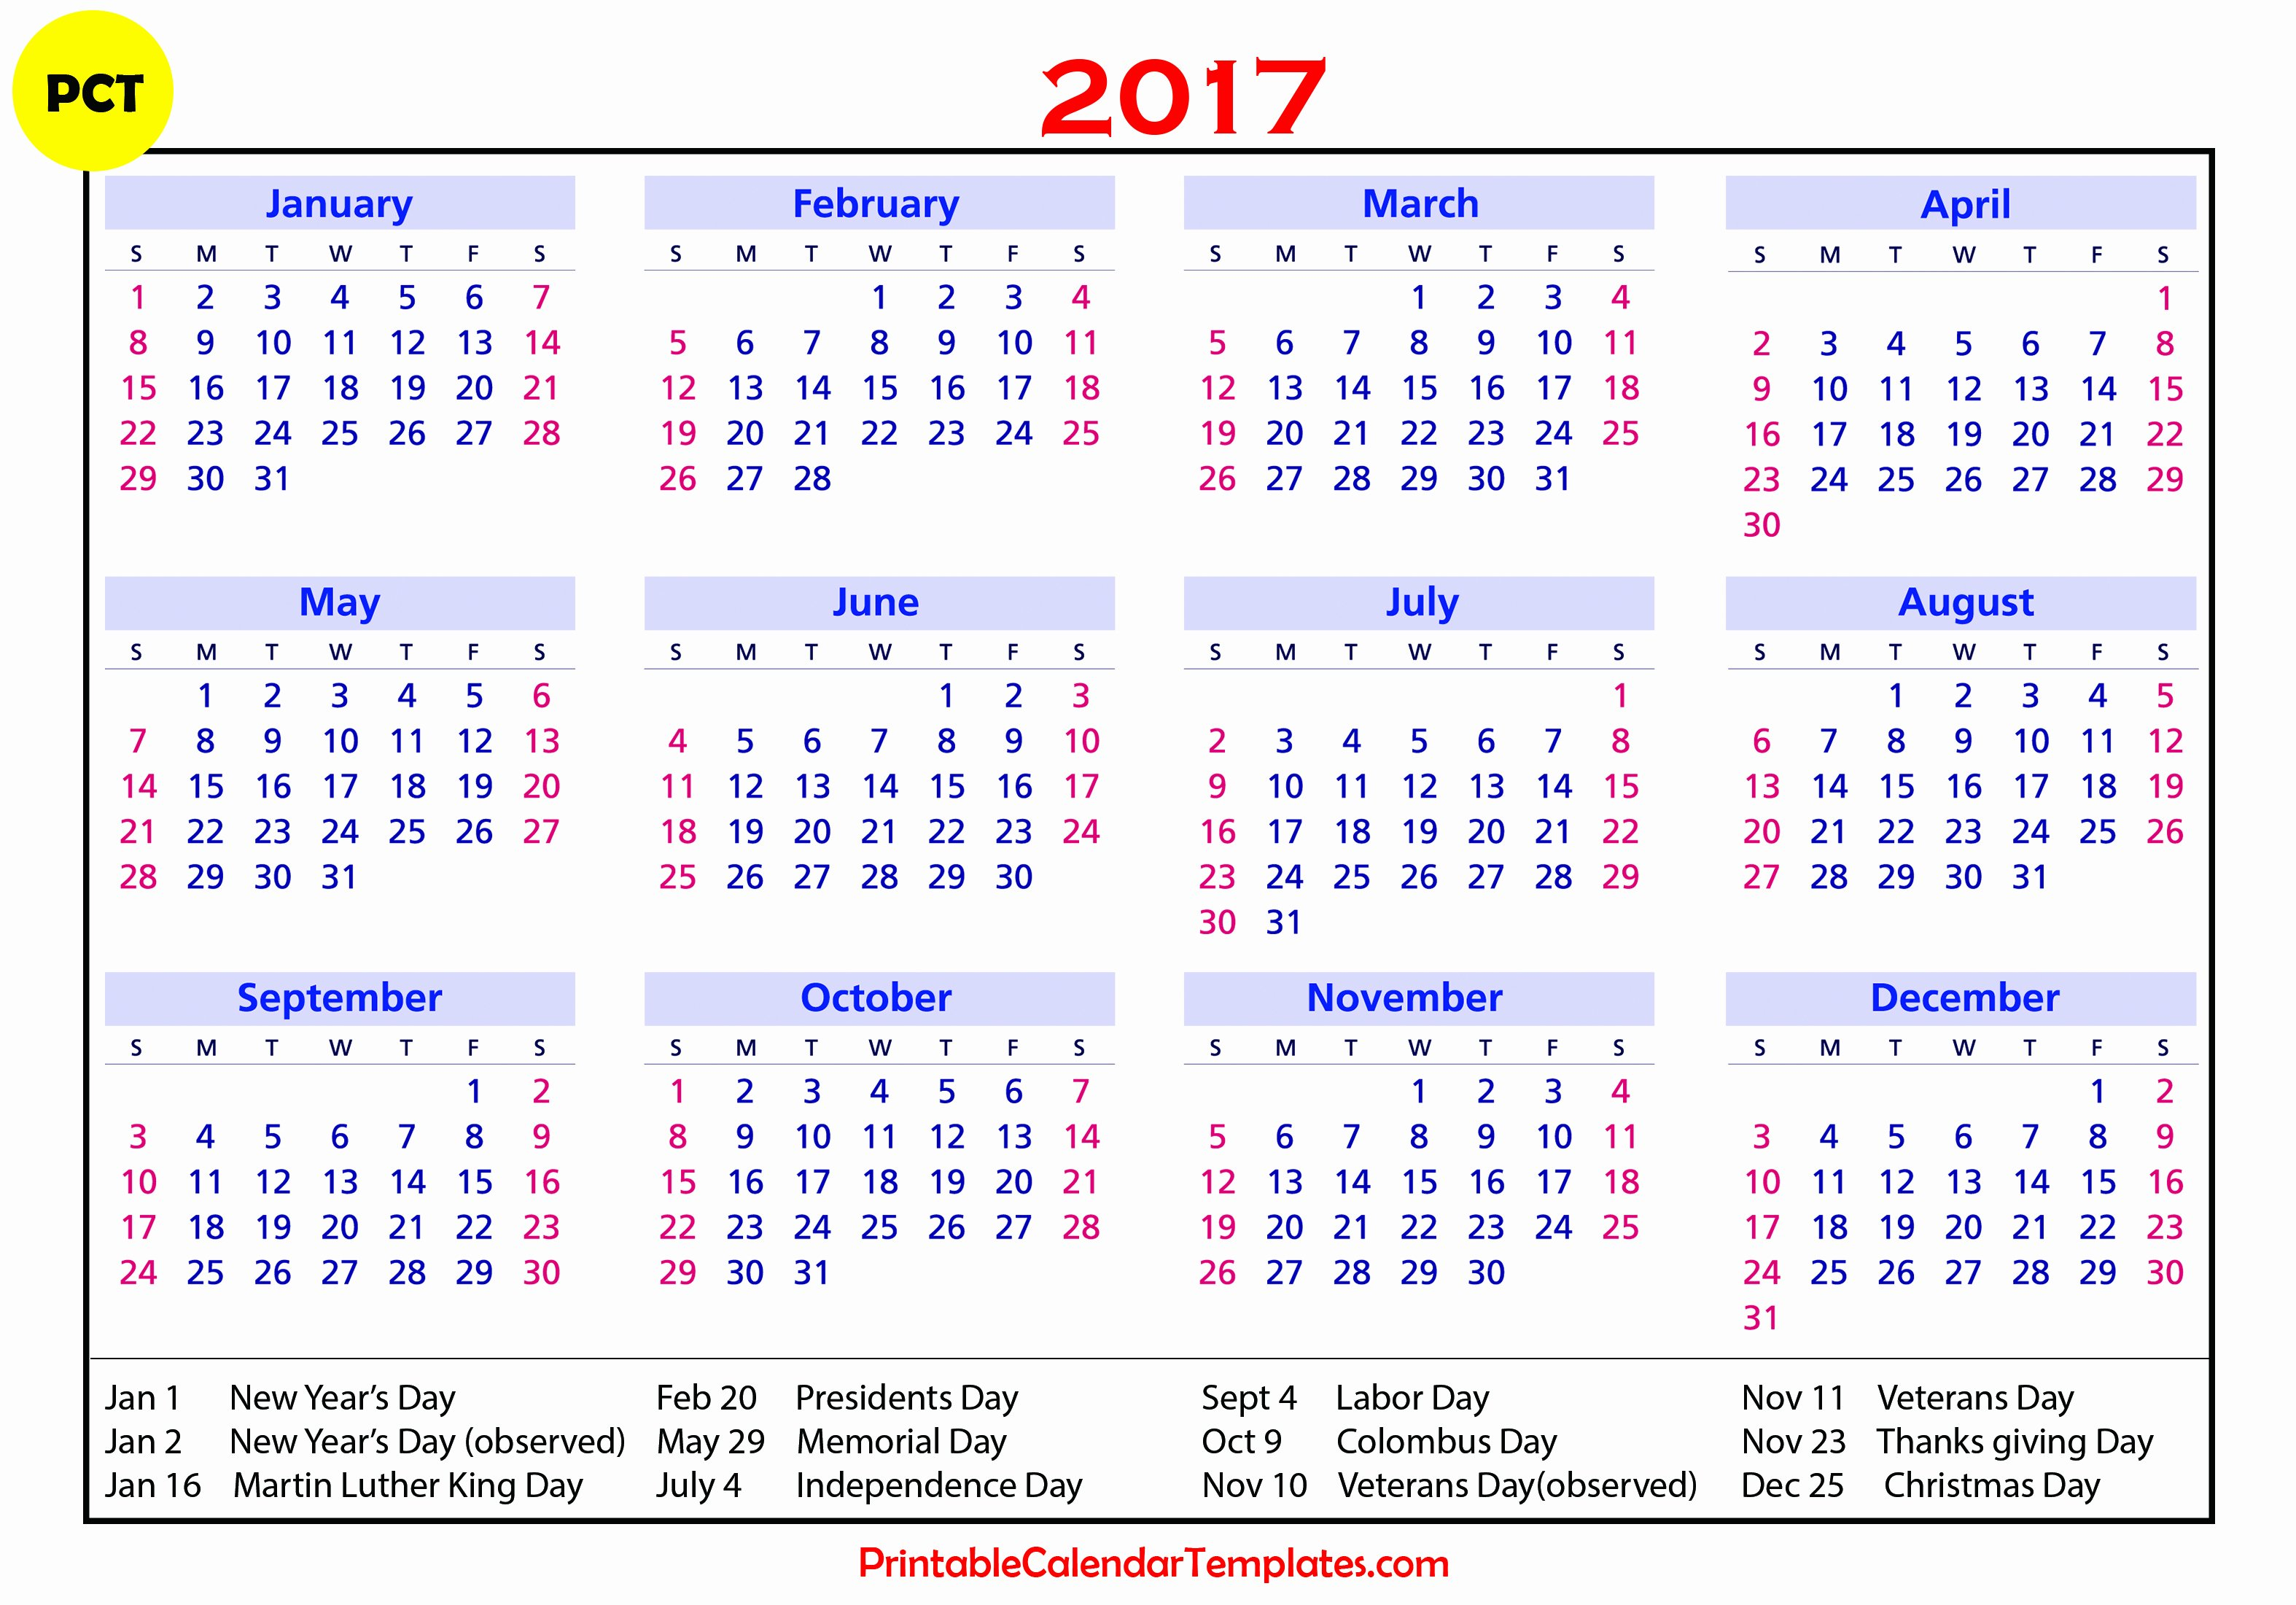 Free Yearly Calendar 2017 Fresh 2017 Calendar with Holidays